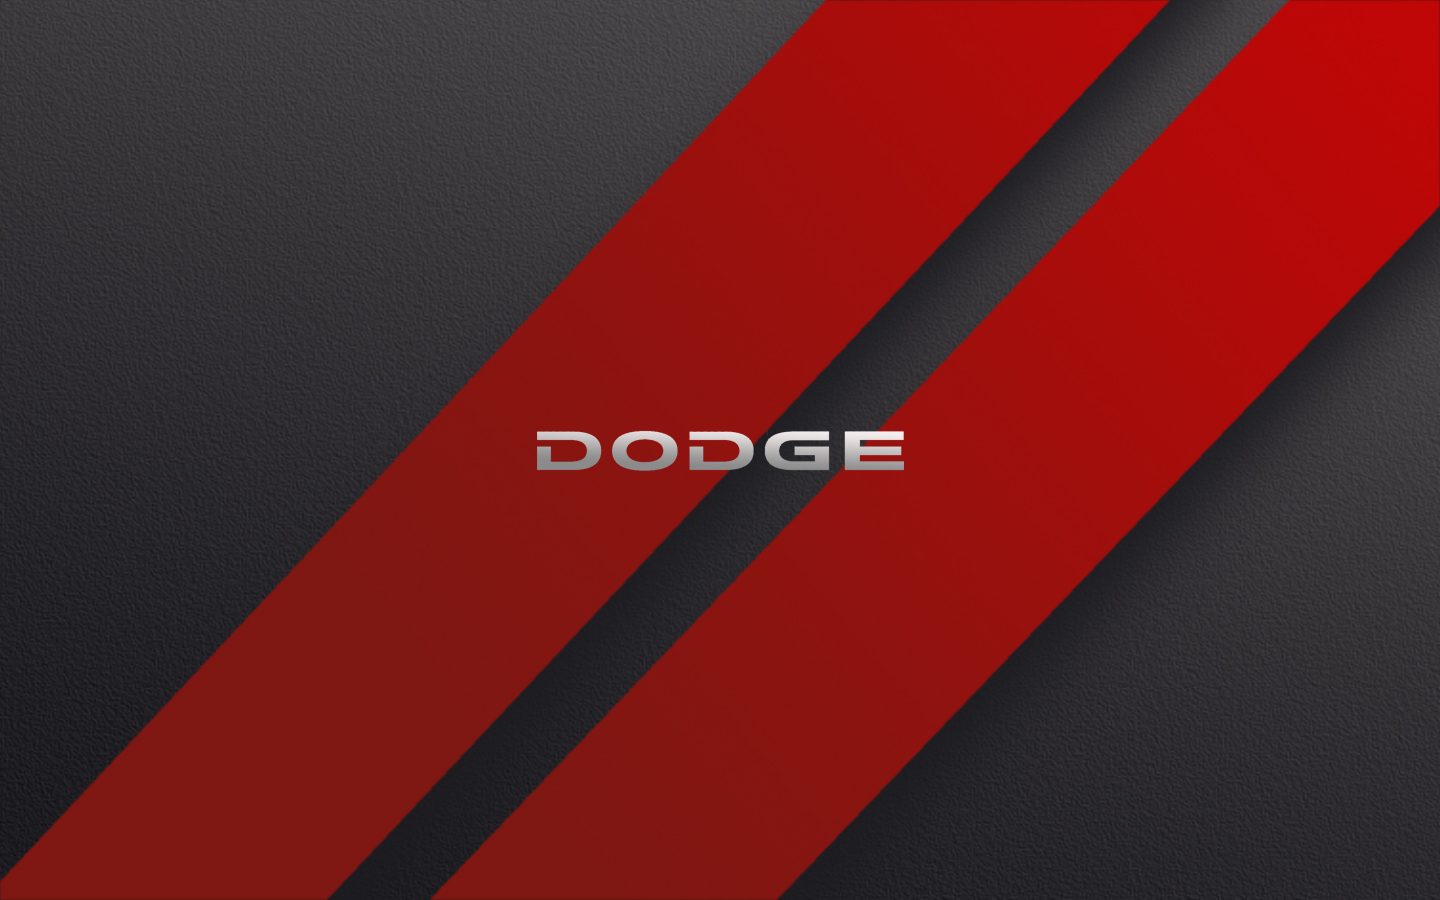 Dodge Logo Dodge Car Symbol Meaning And History Car Brand Names Com